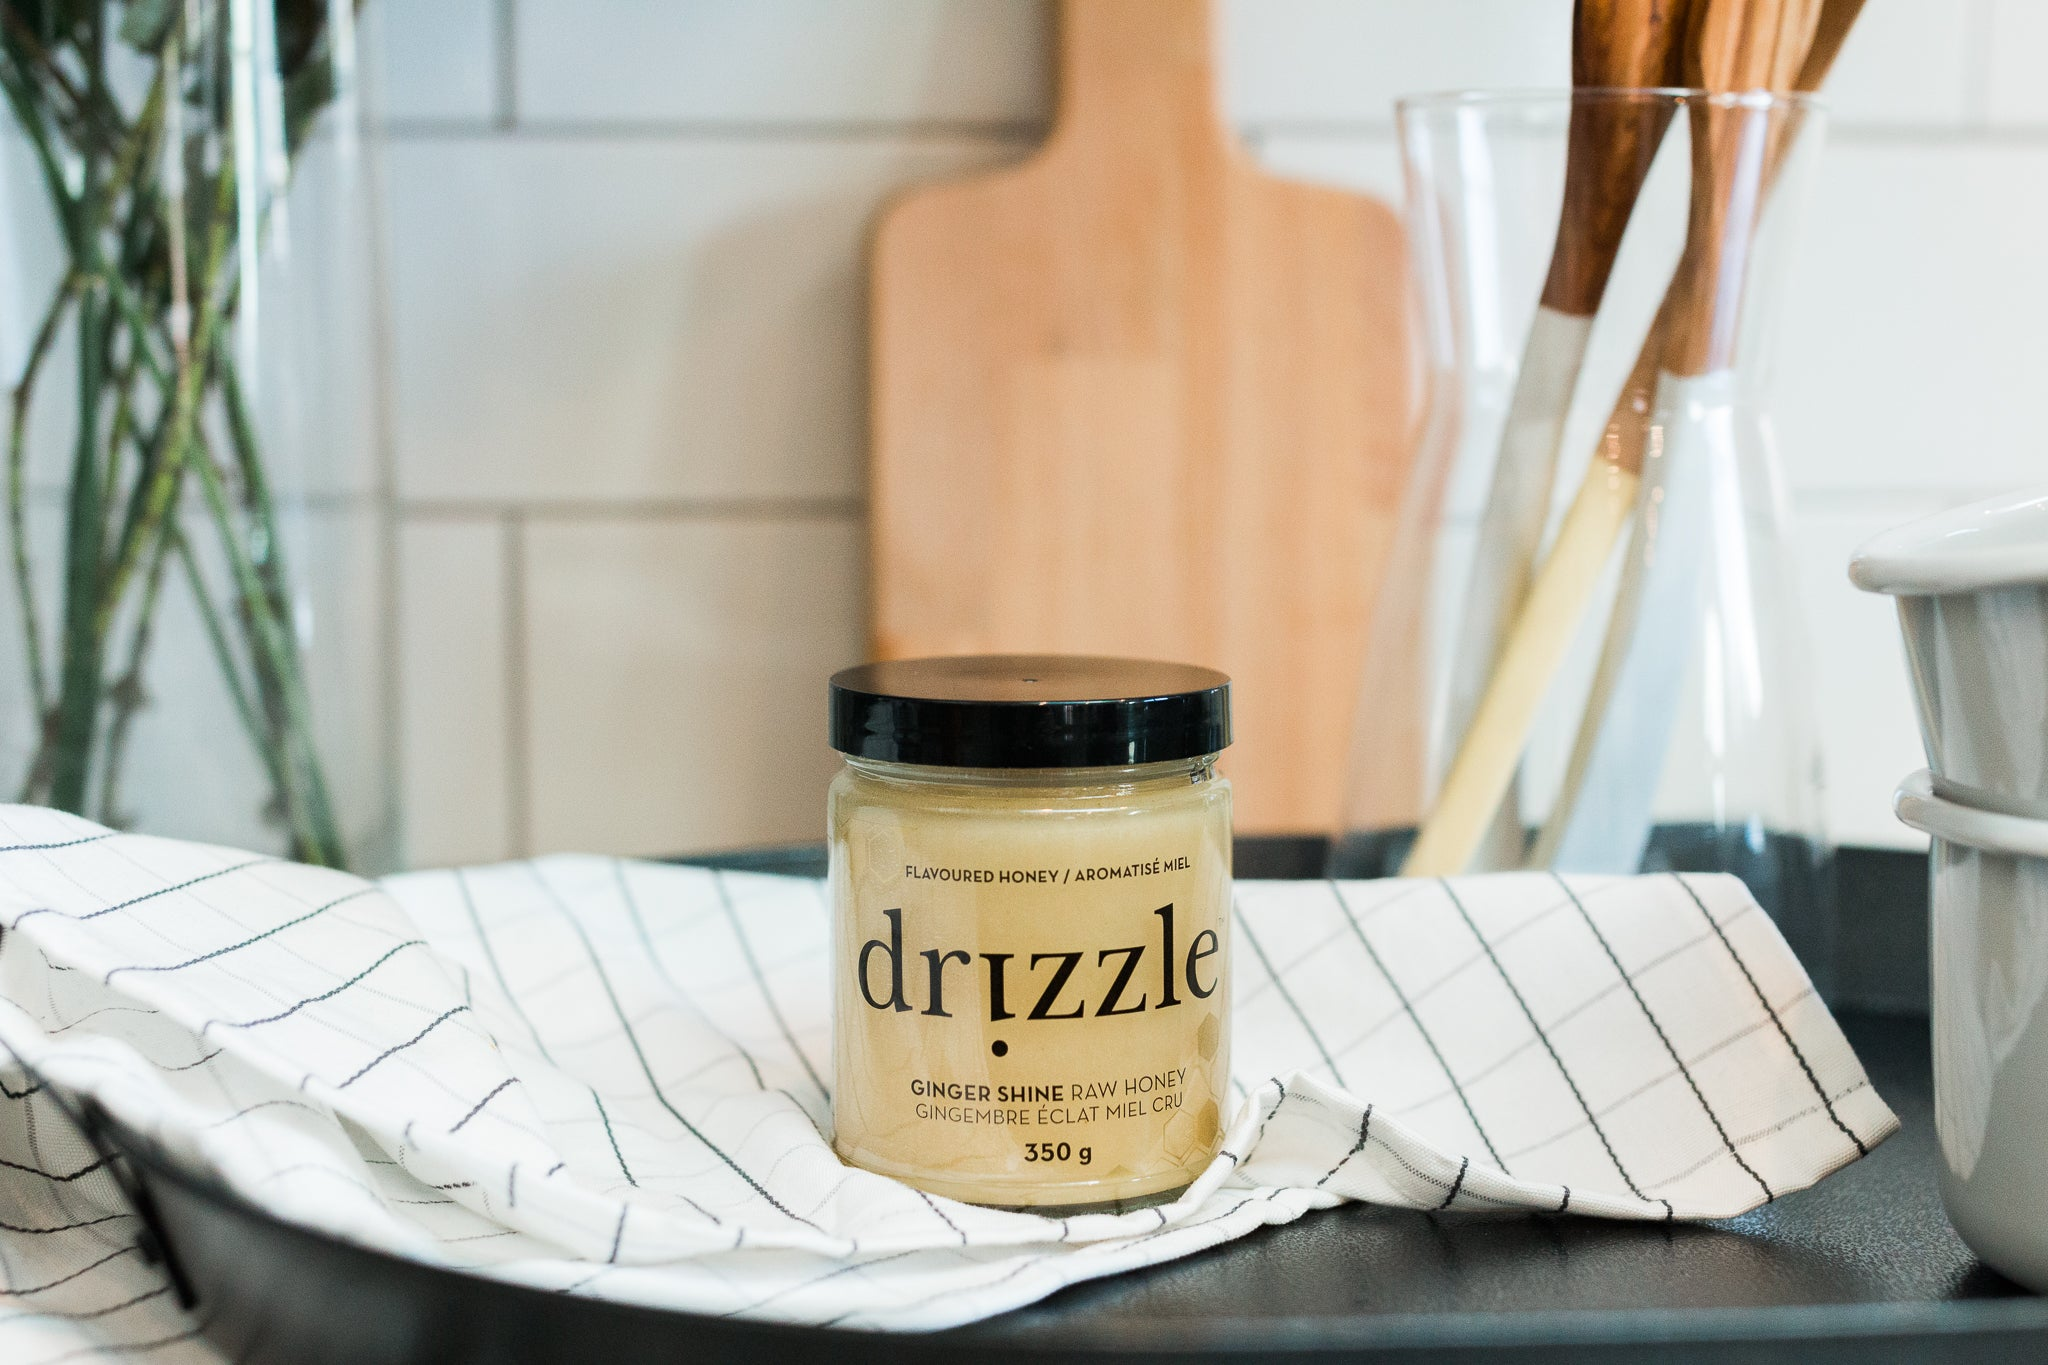 Drizzle Ginger Shine Raw Honey in a kitchen.